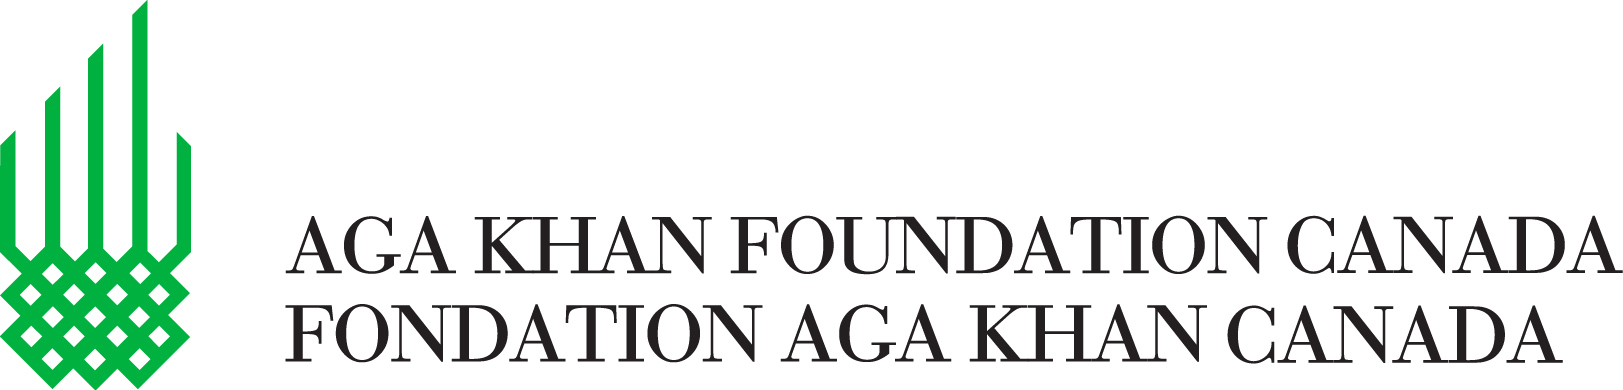 Aga Khan Foundation Canada.jpg